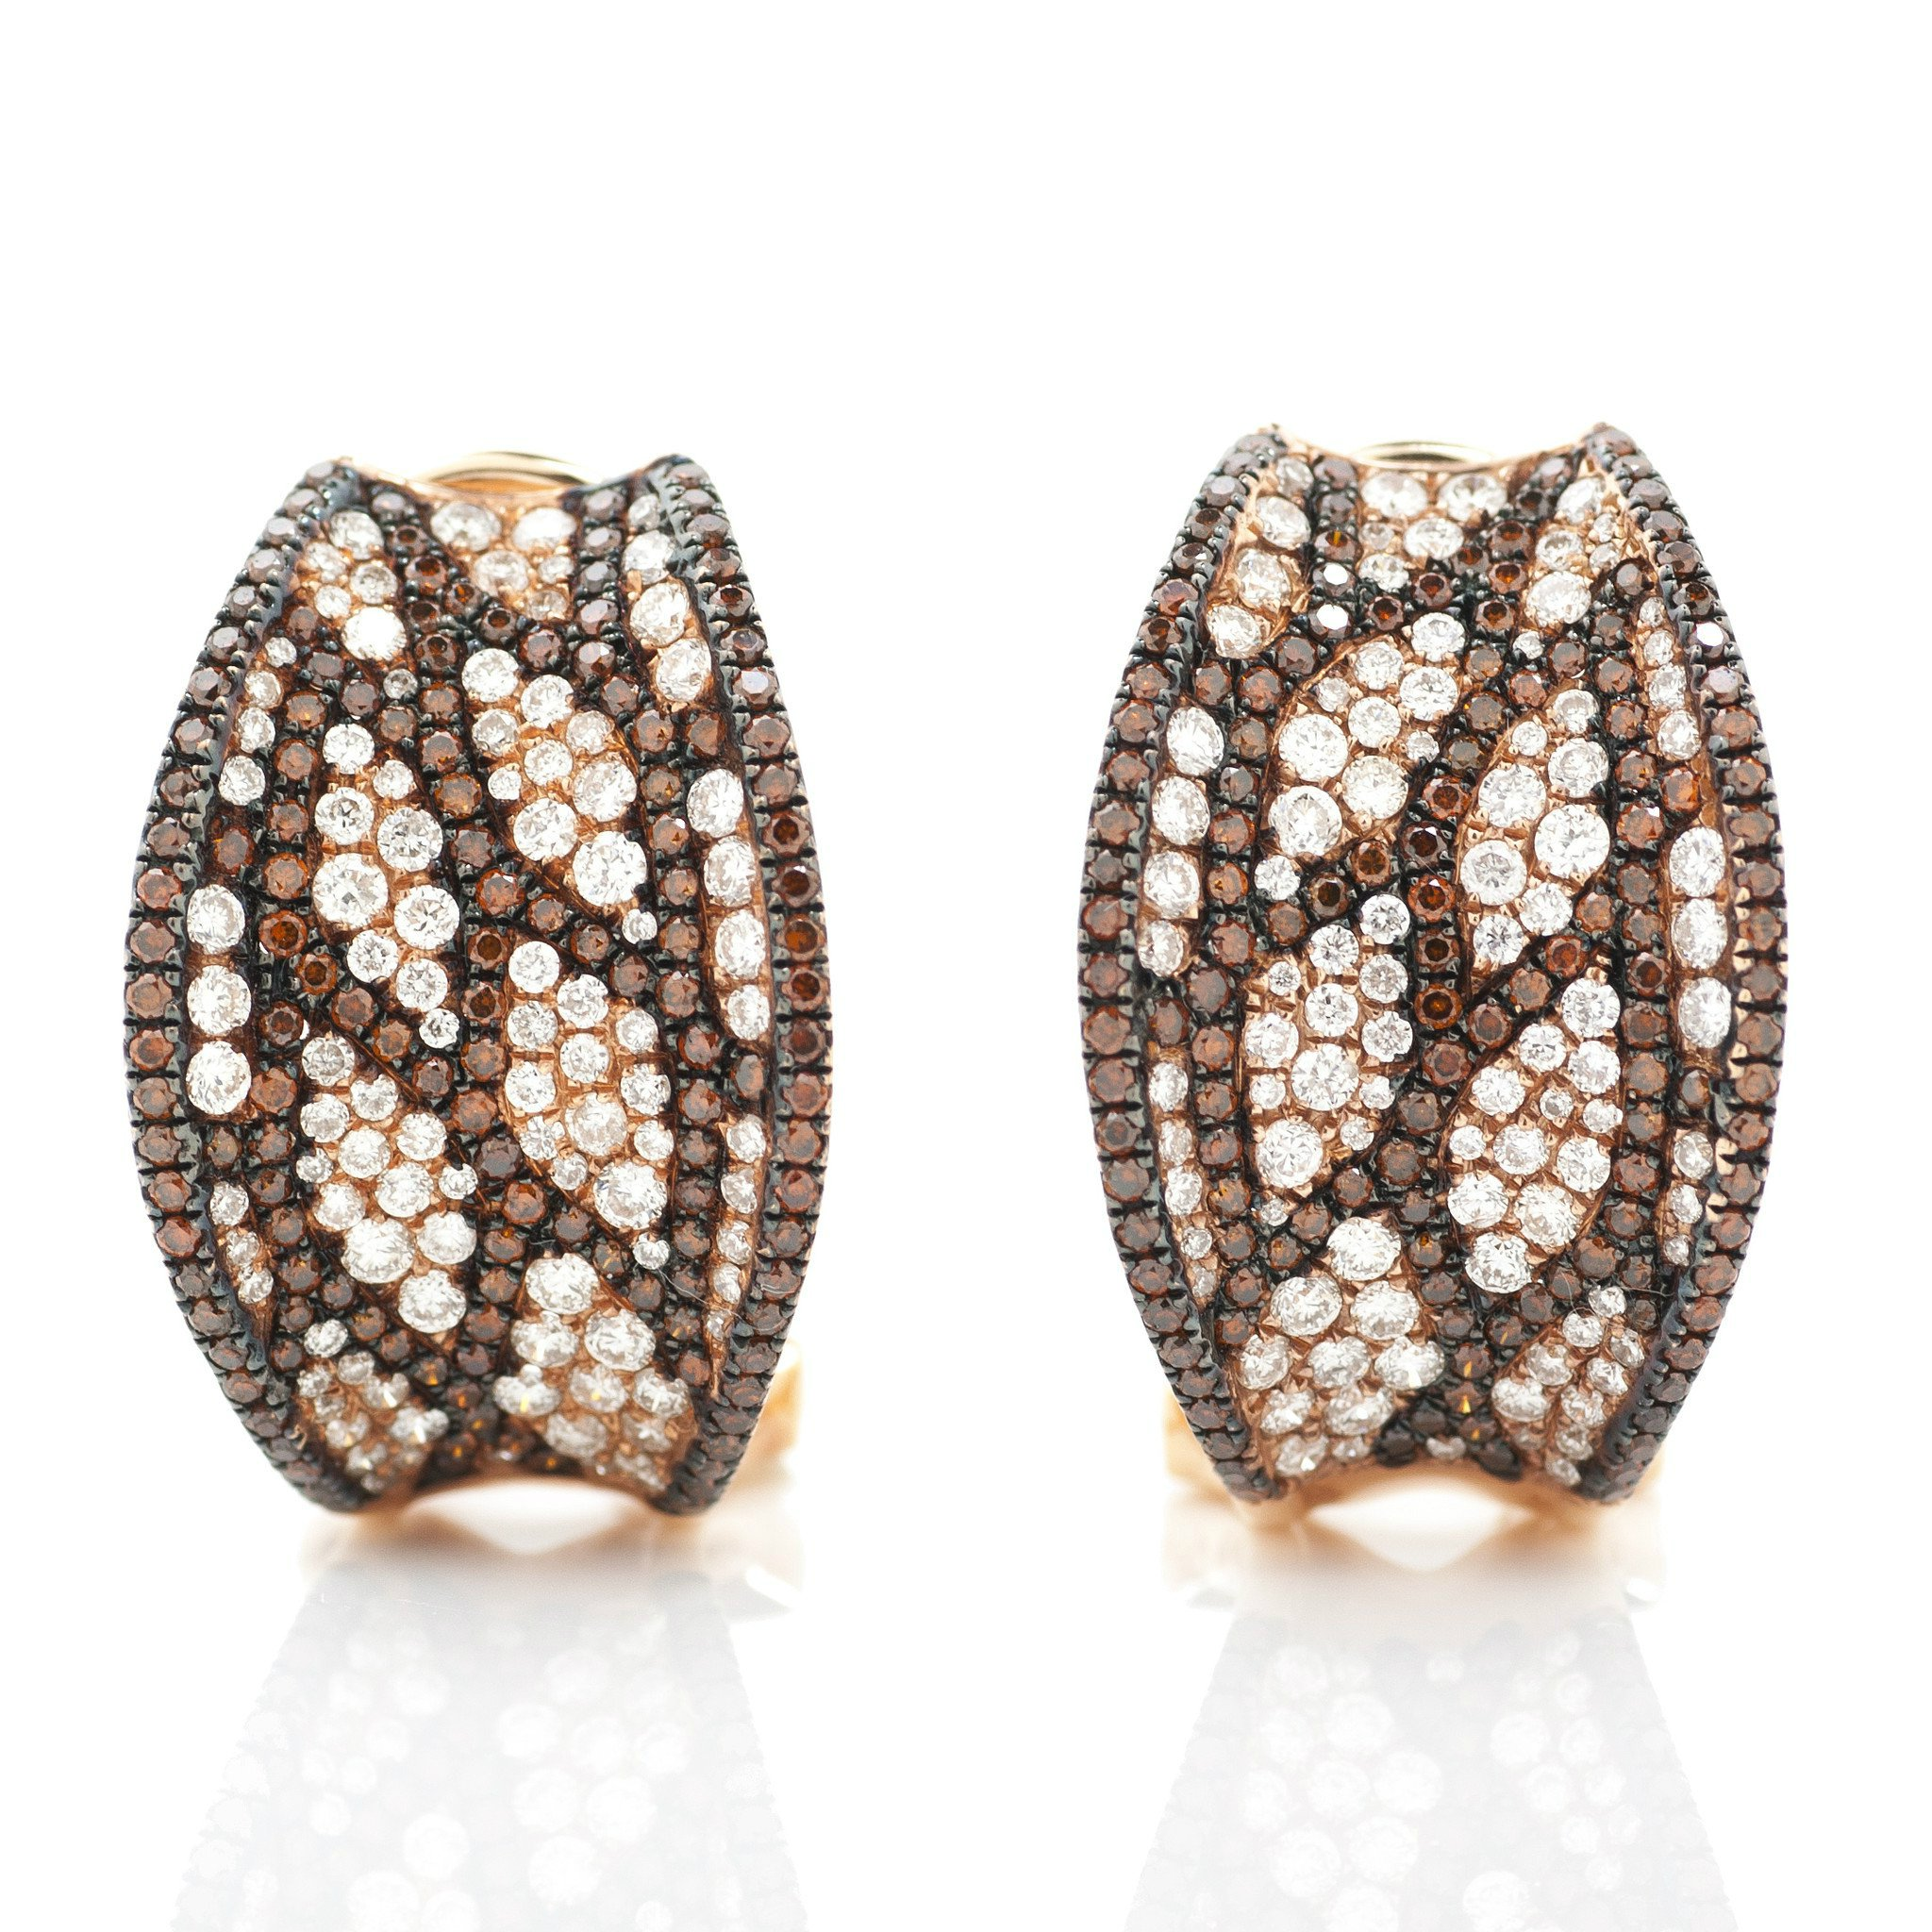 White Diamond & Cognac Diamond Pave Earrings